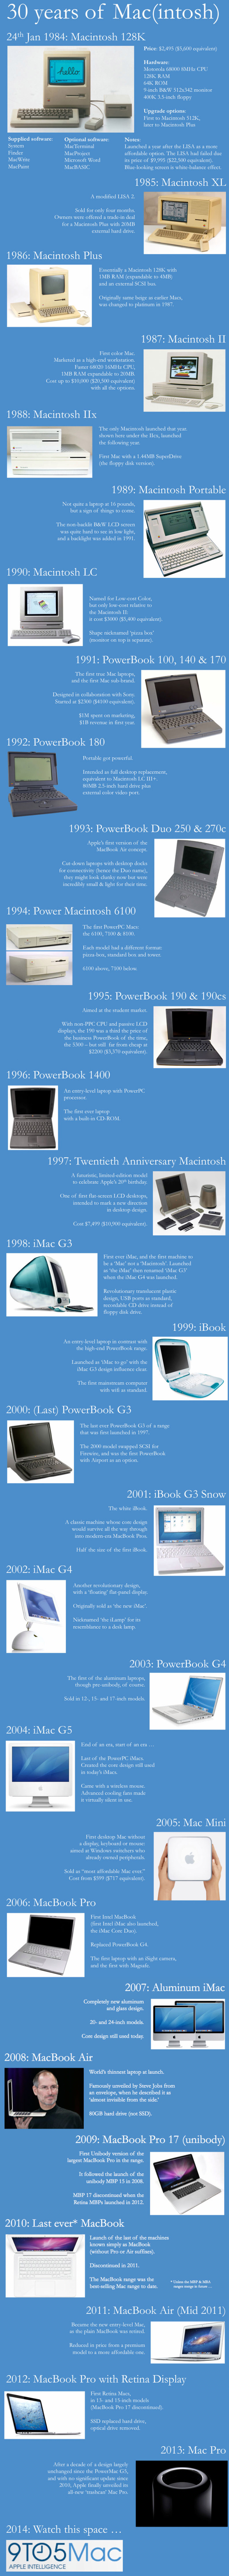 30 years of mac